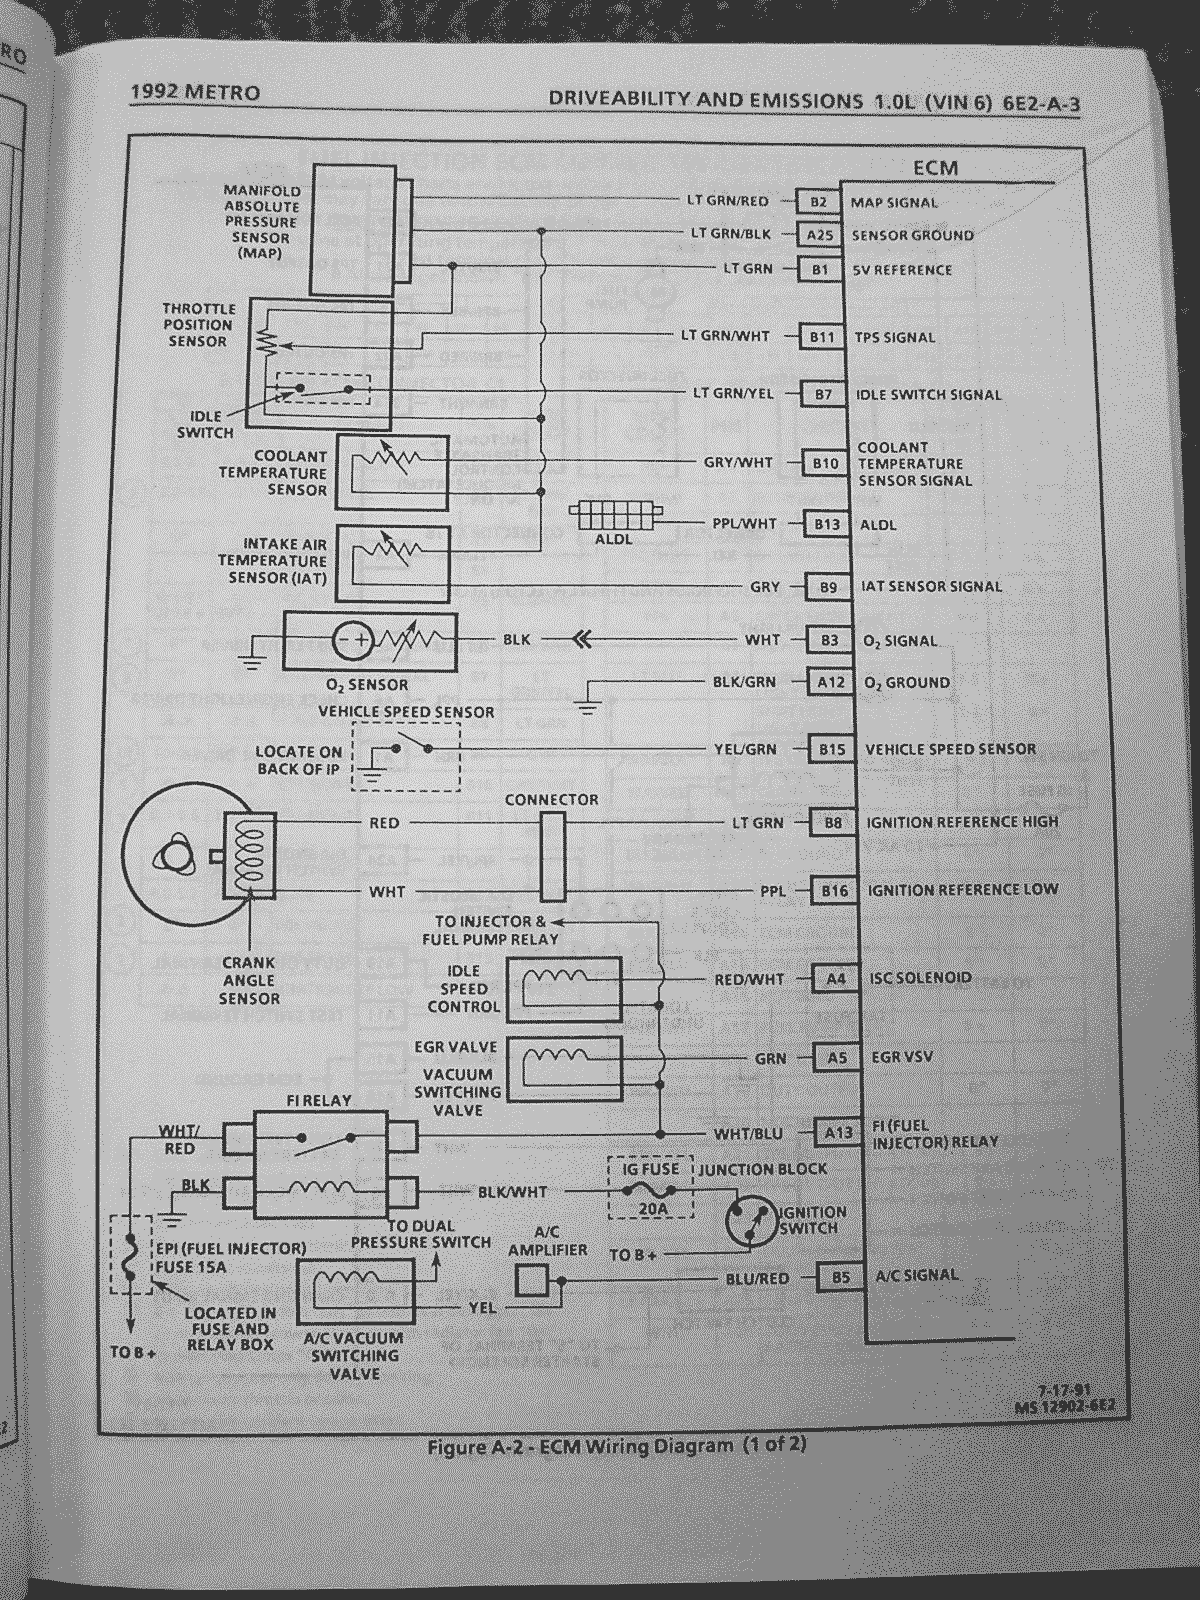 geo metro and suzuki swift wiring diagrams metroxfi com rh metroxfi com 1989 Geo Metro Fuse Box Diagram 1989 Geo Metro Fuse Box Diagram